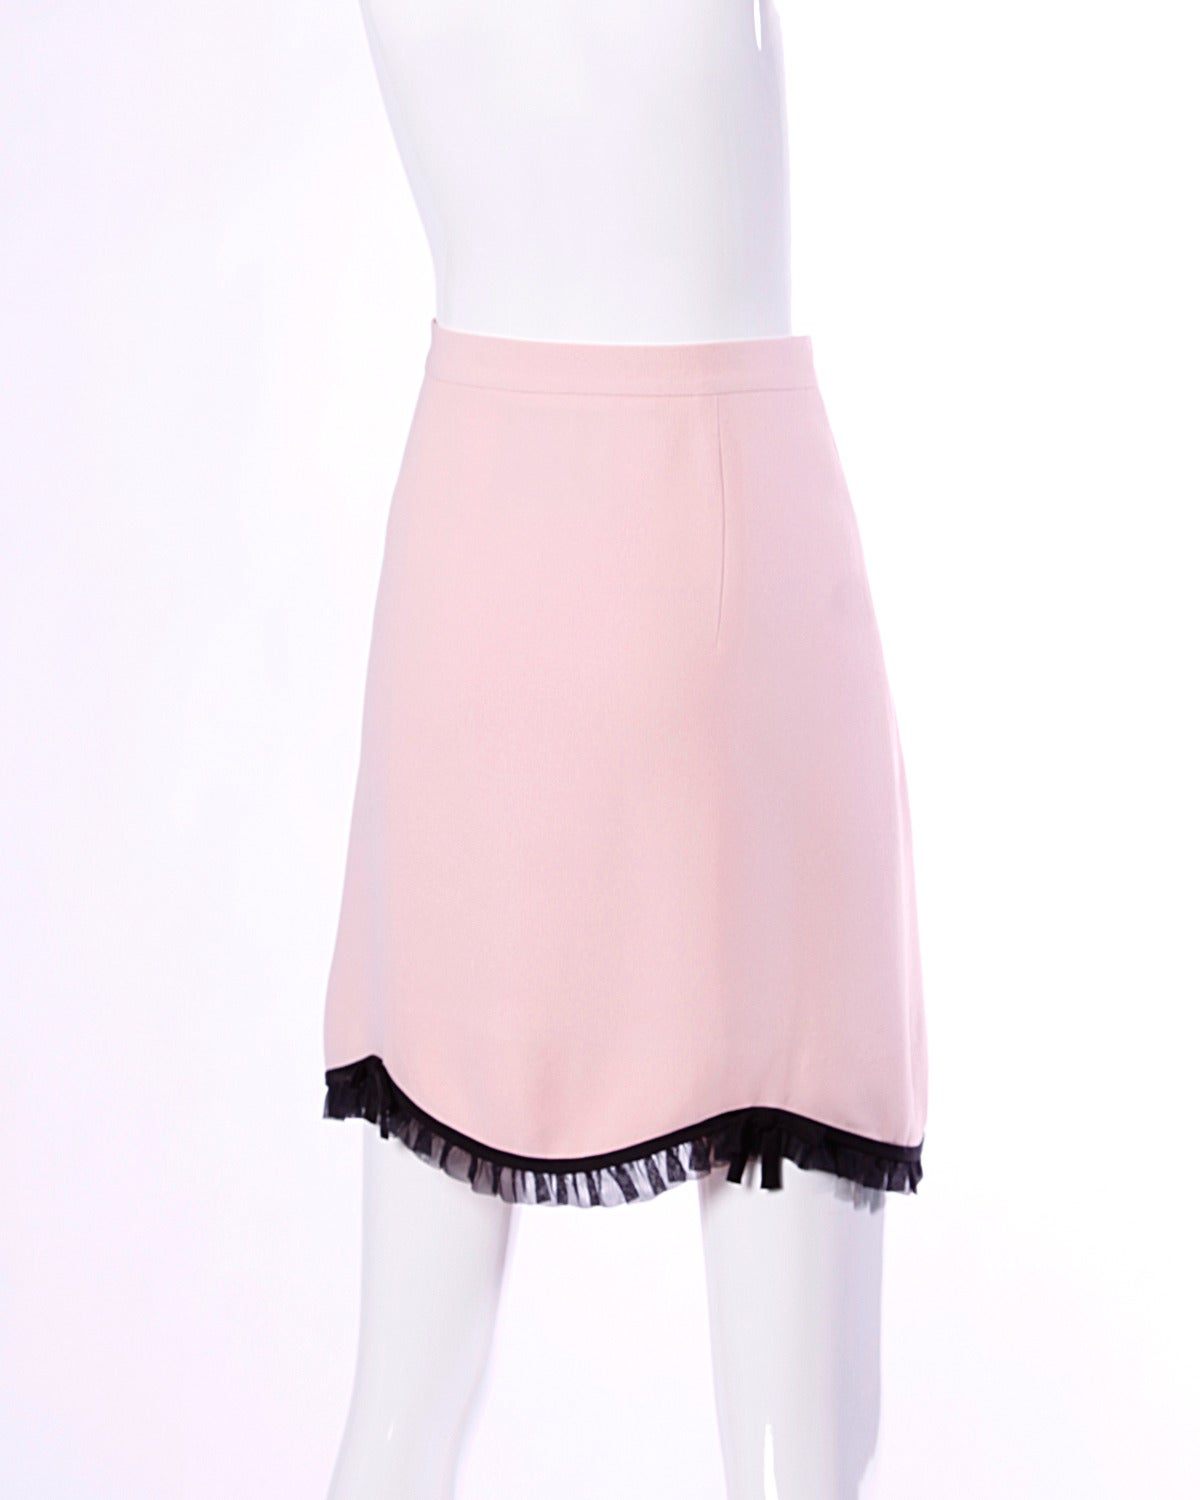 Moschino Vintage 1990s 90s Pink + Black Ruffle Scalloped Skirt 2